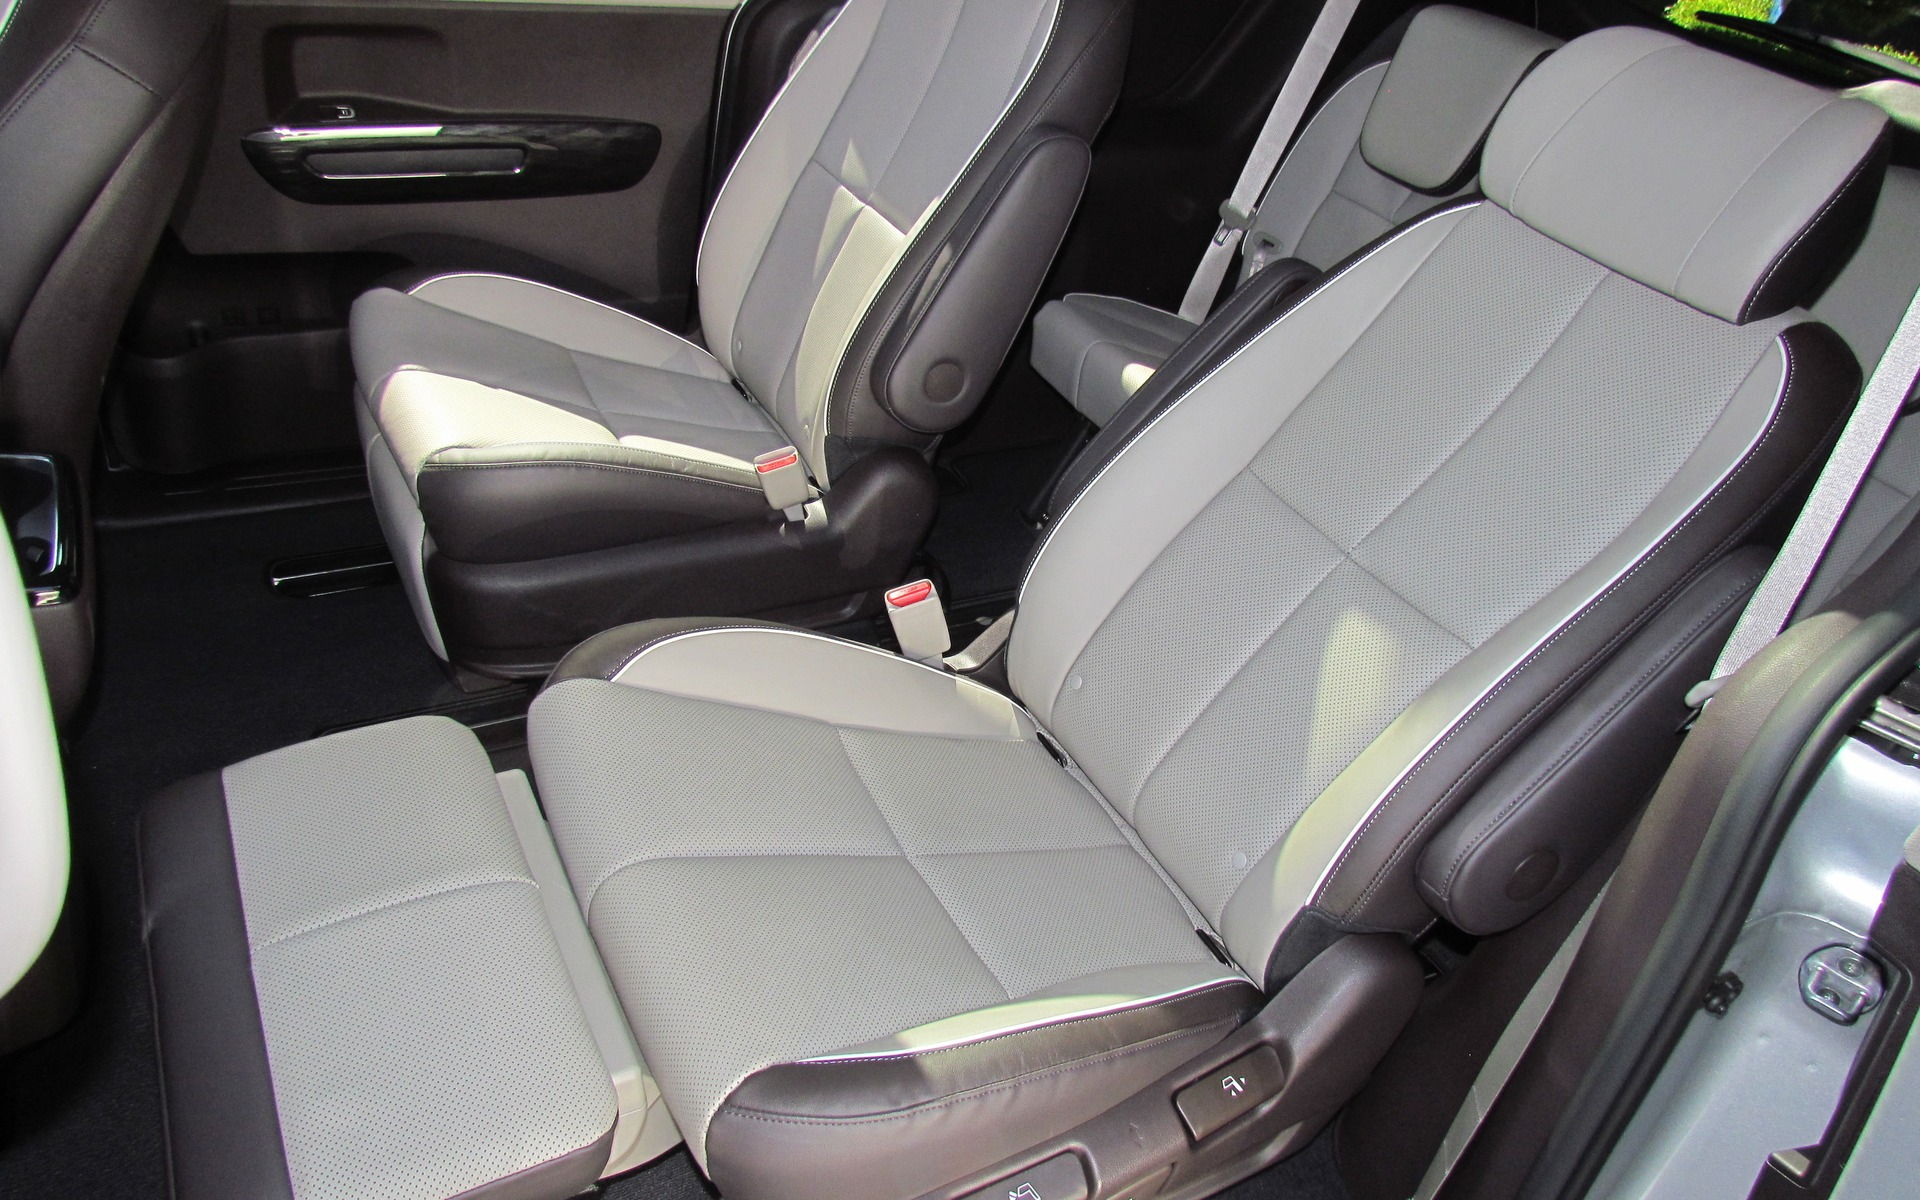 new 2015 car with reclining seats autos post. Black Bedroom Furniture Sets. Home Design Ideas